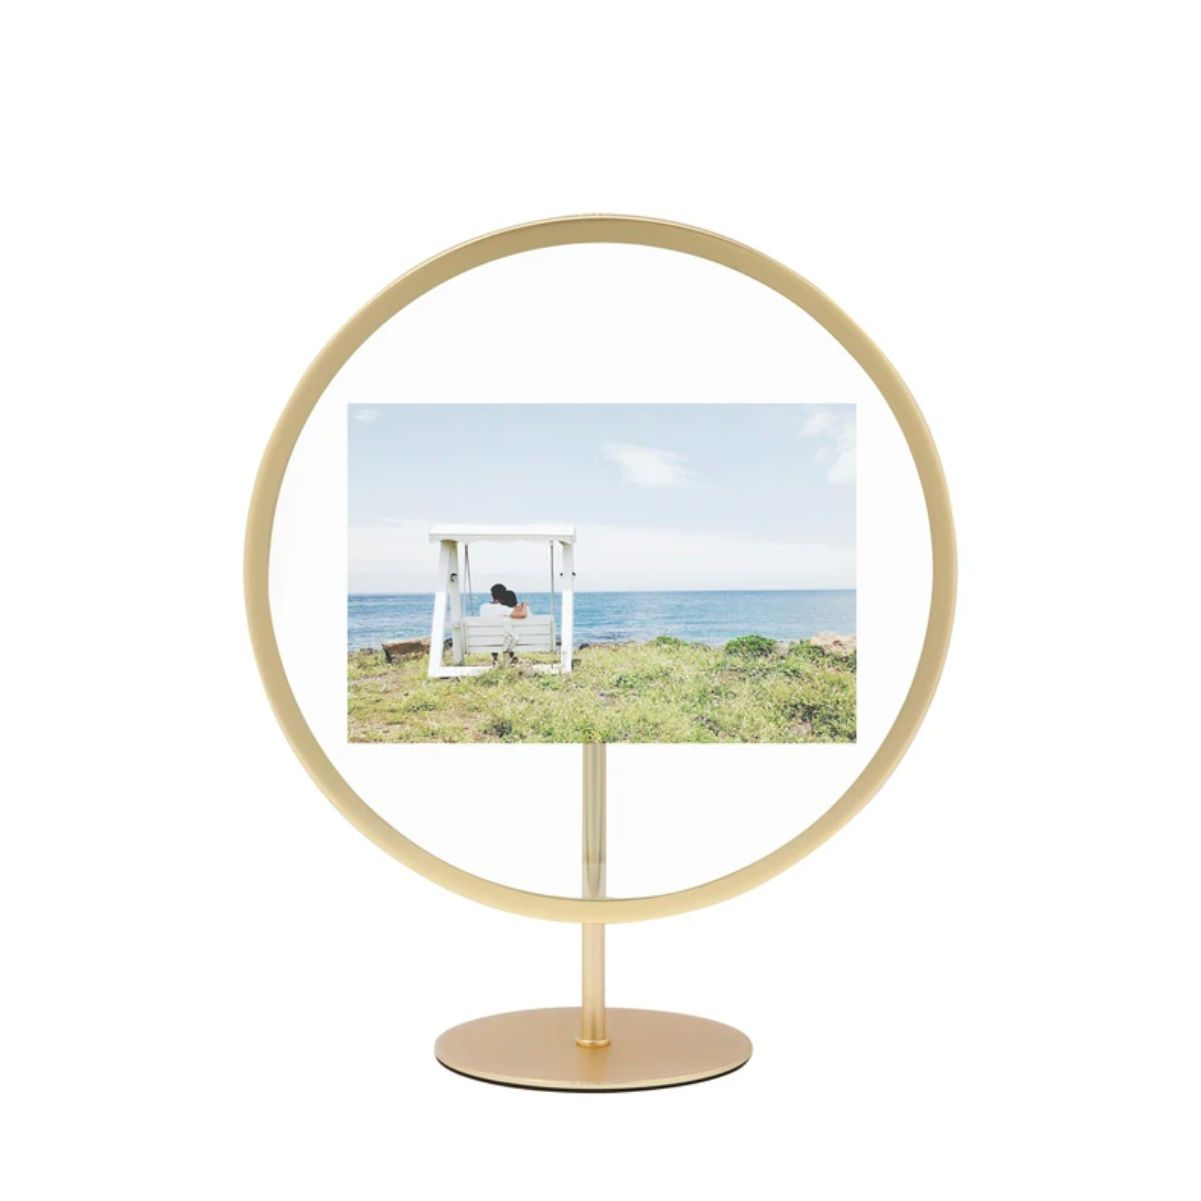 Umbra Infinity Floating Photo Display 4*6 , Matt Brass